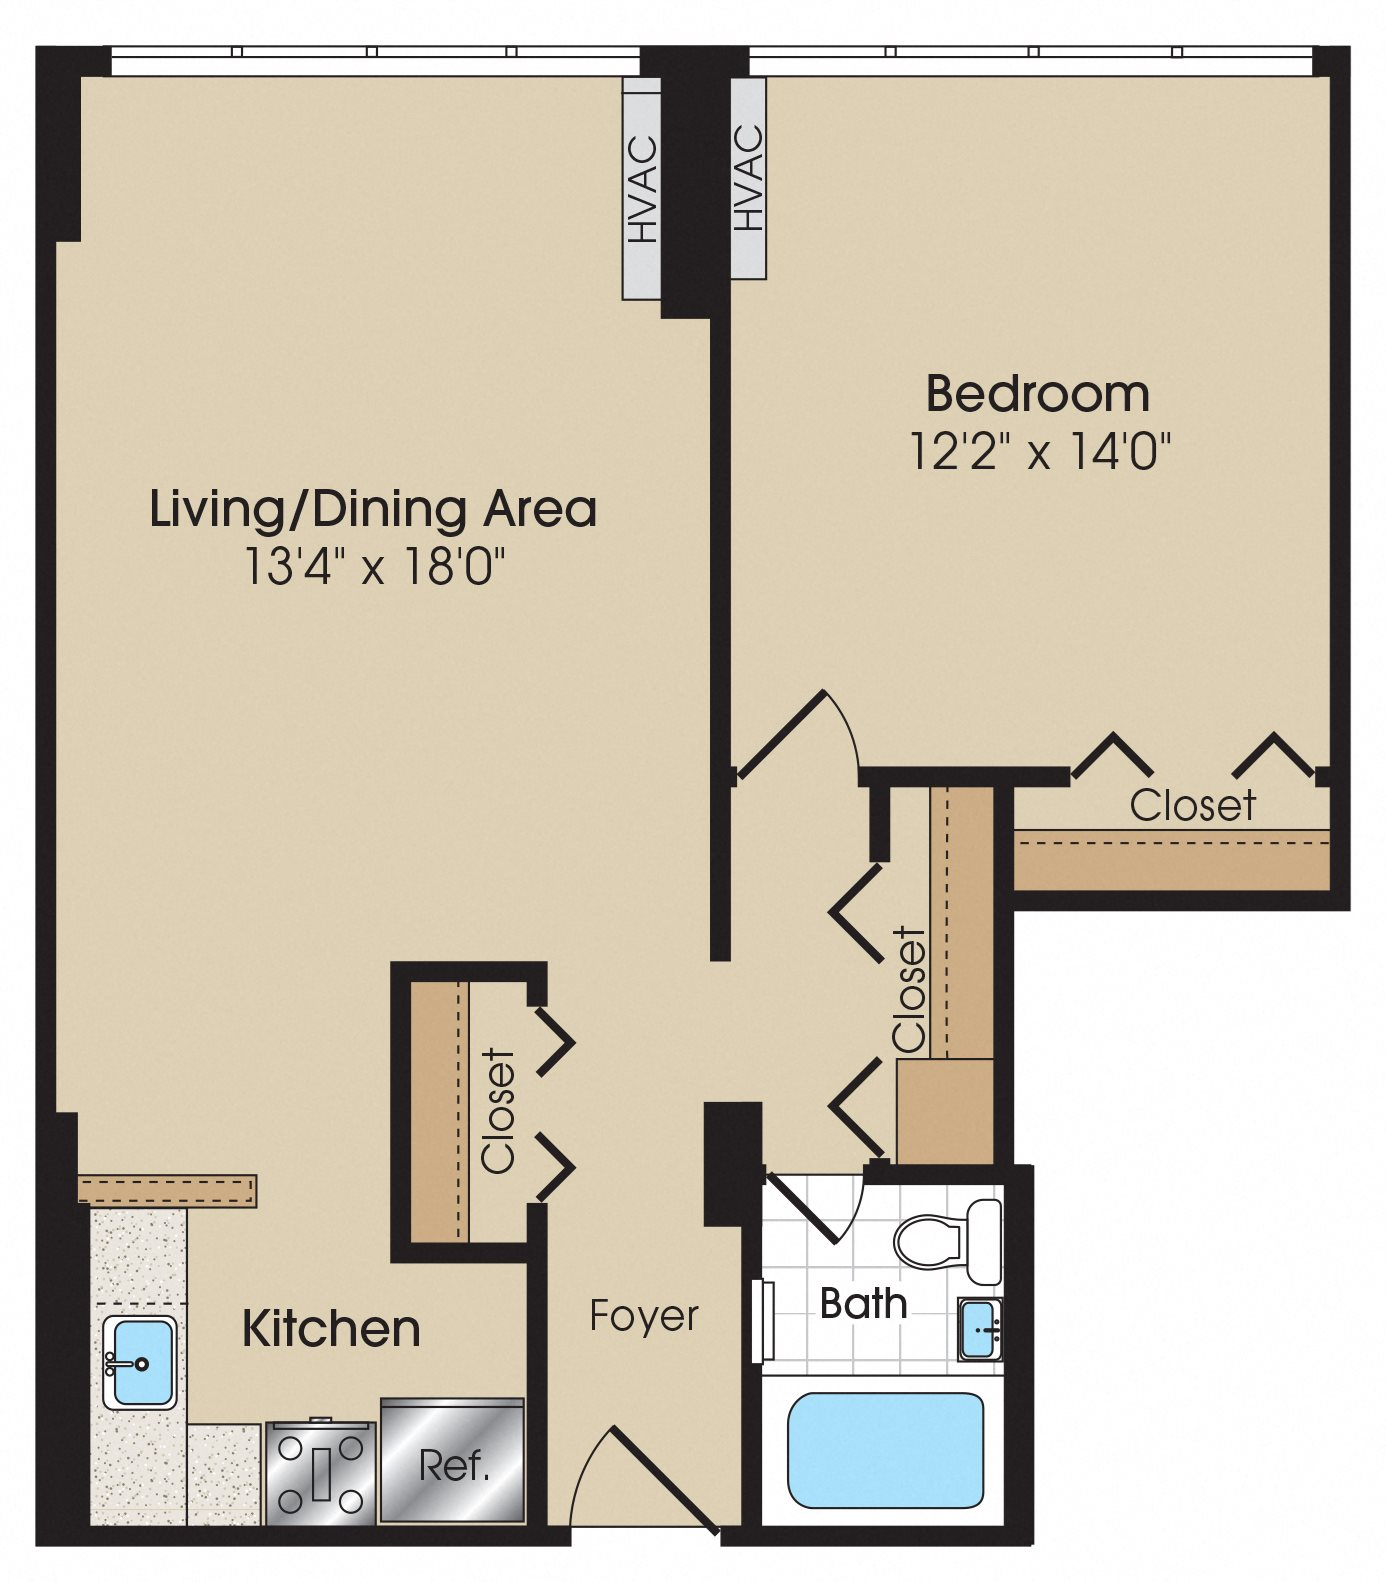 Studio 1 Bedroom Apartments: Studio & 1 Bedroom Apartment